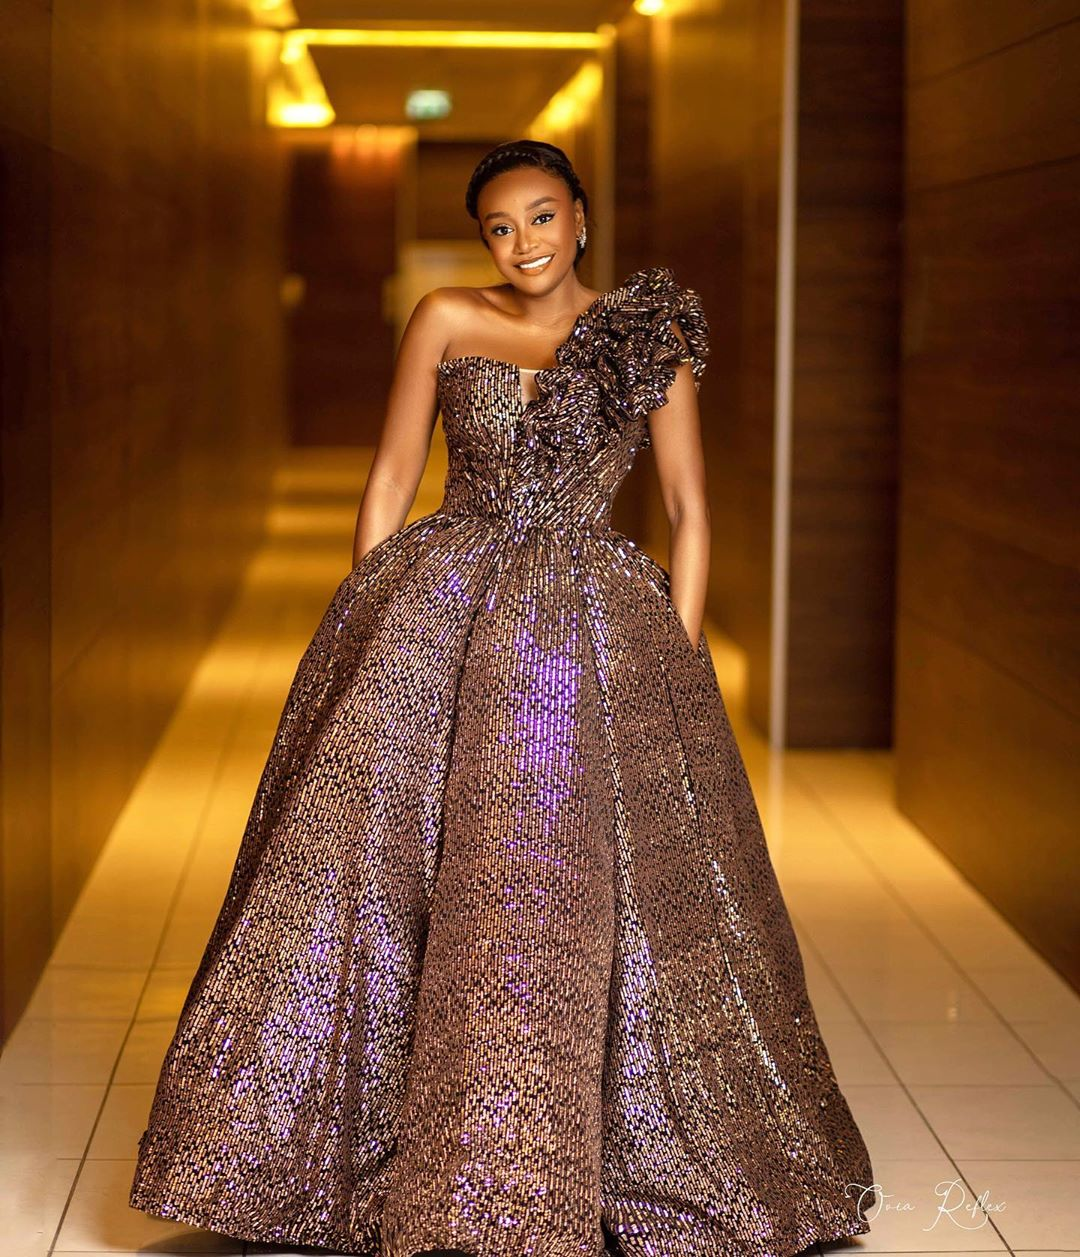 michelle-dede-ebony-life-films-tv-your-excellency-movie-premiere-inauguration-ball